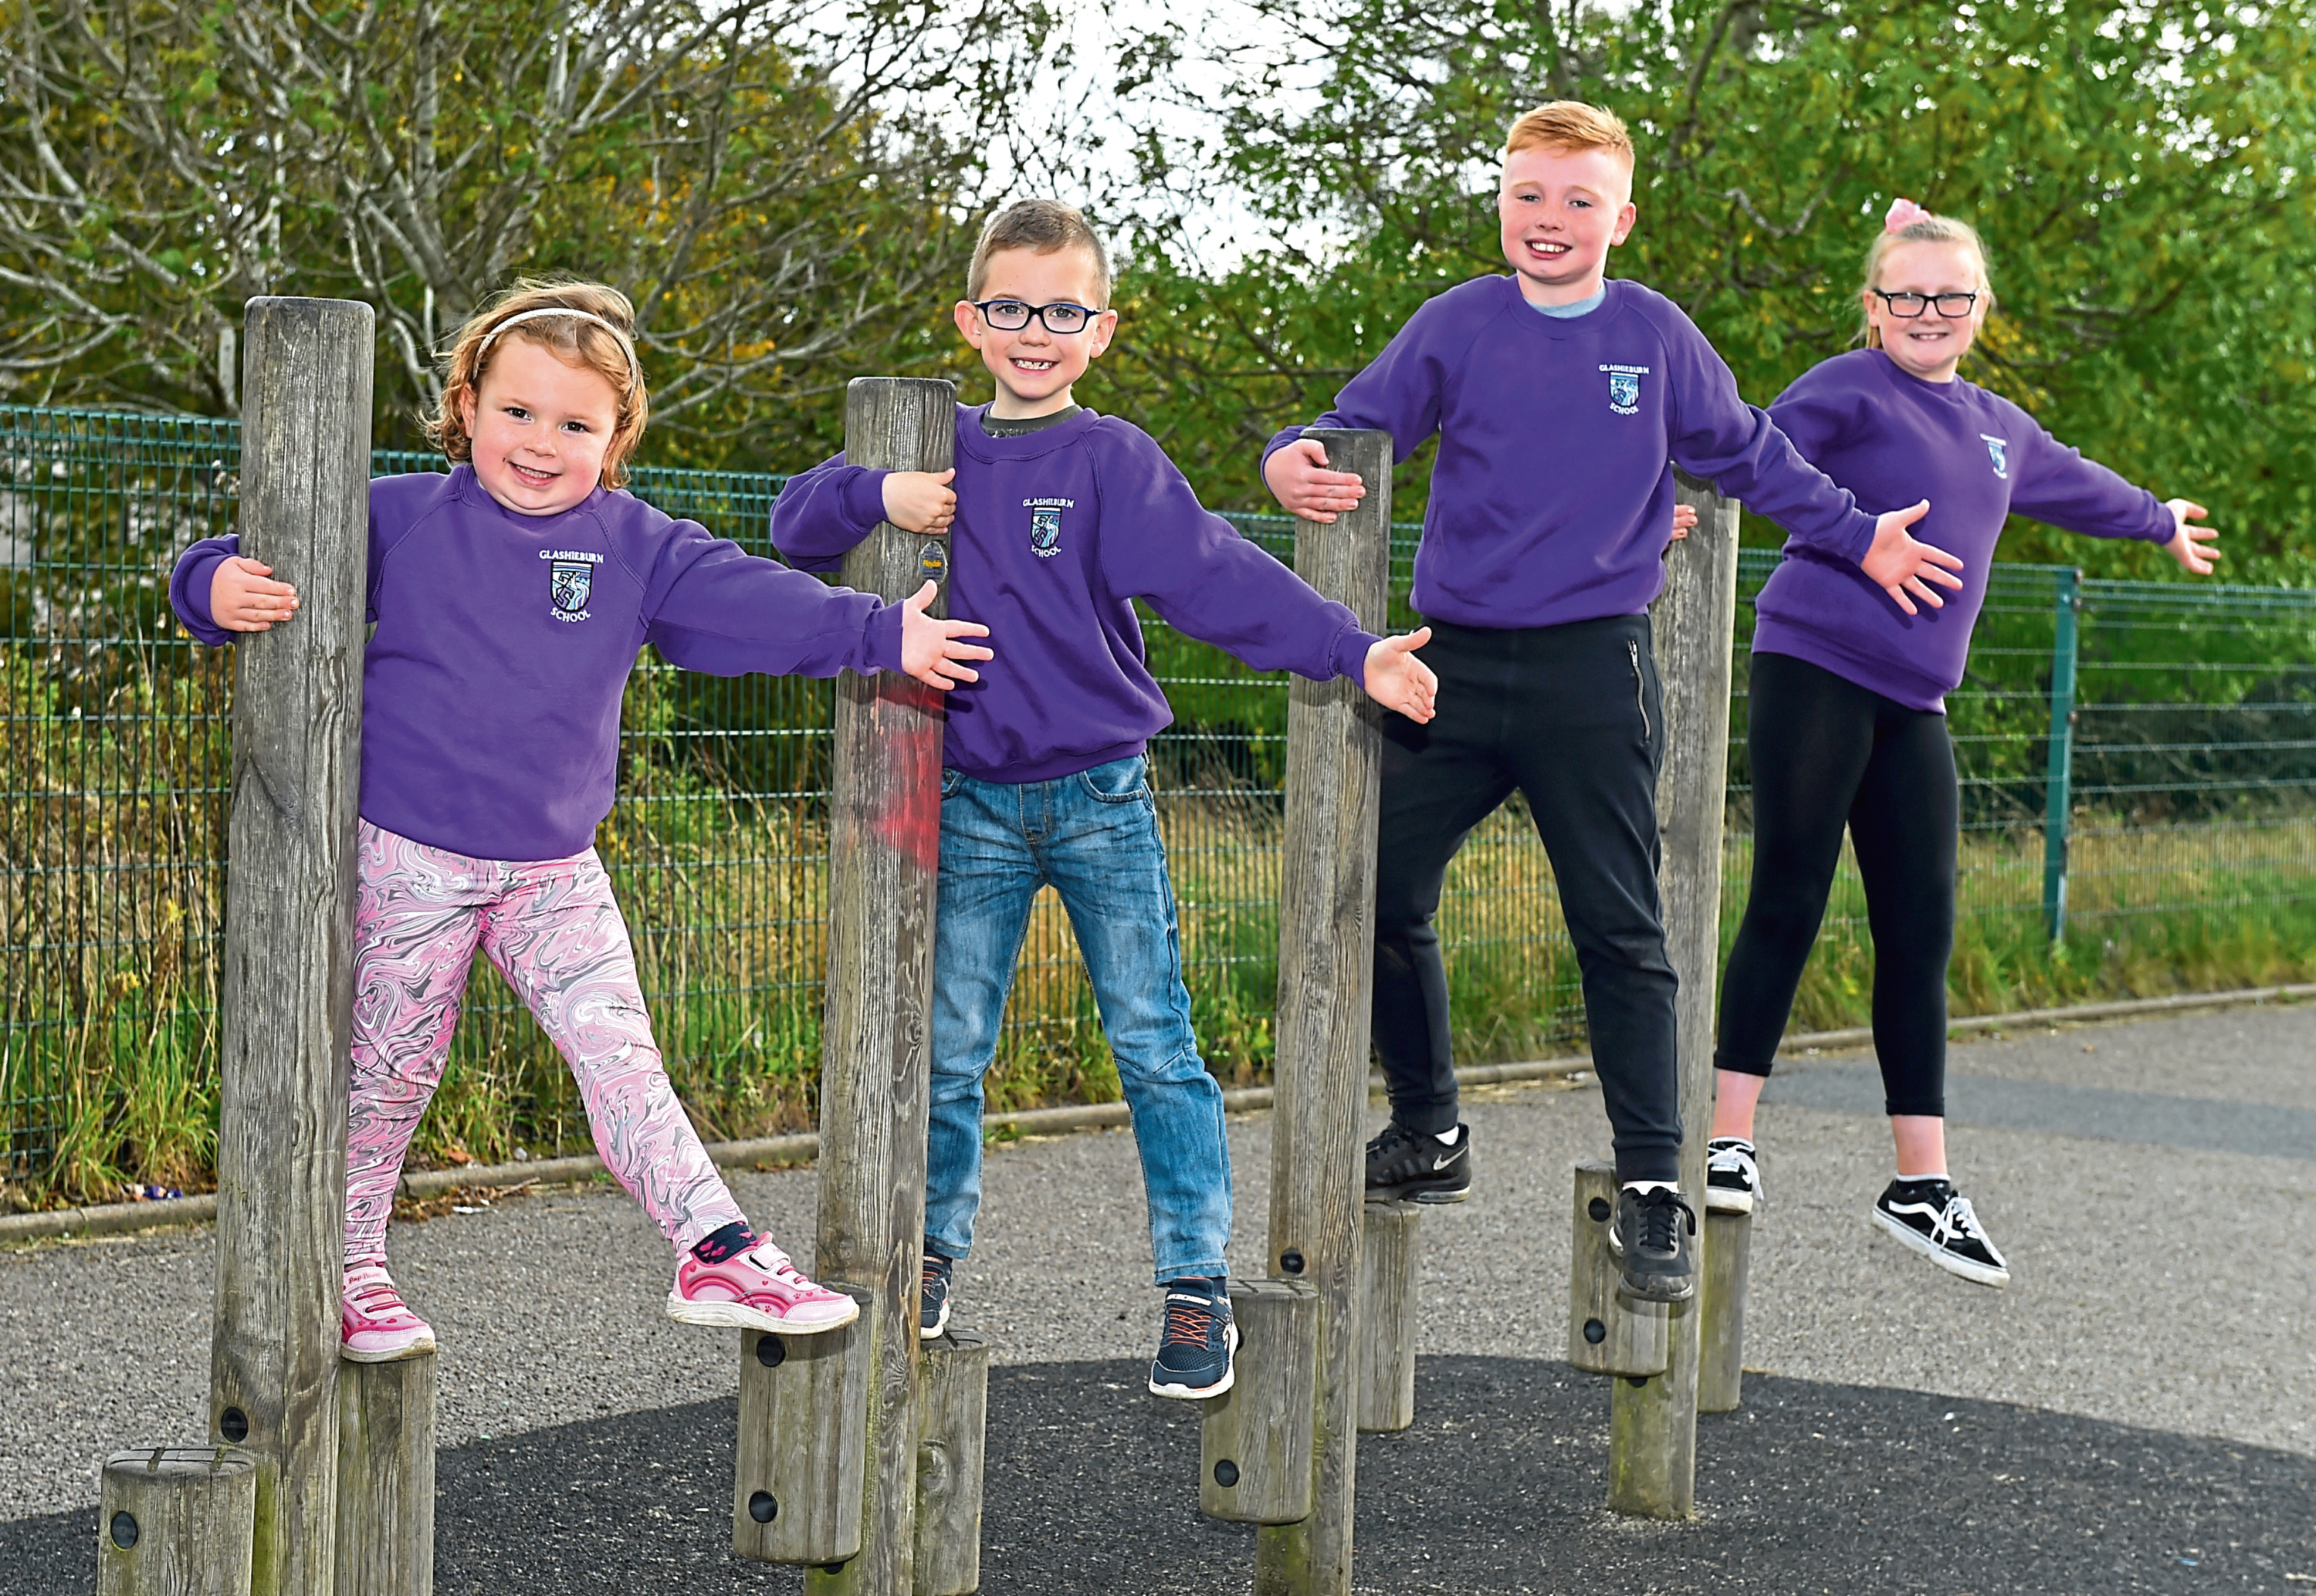 Rhea Petrie, 5, Cameron Kessack, 7, Harry Hepburn, 10, Dania Ross, 11 of Glashieburn School. Picture by Kenny Elrick.